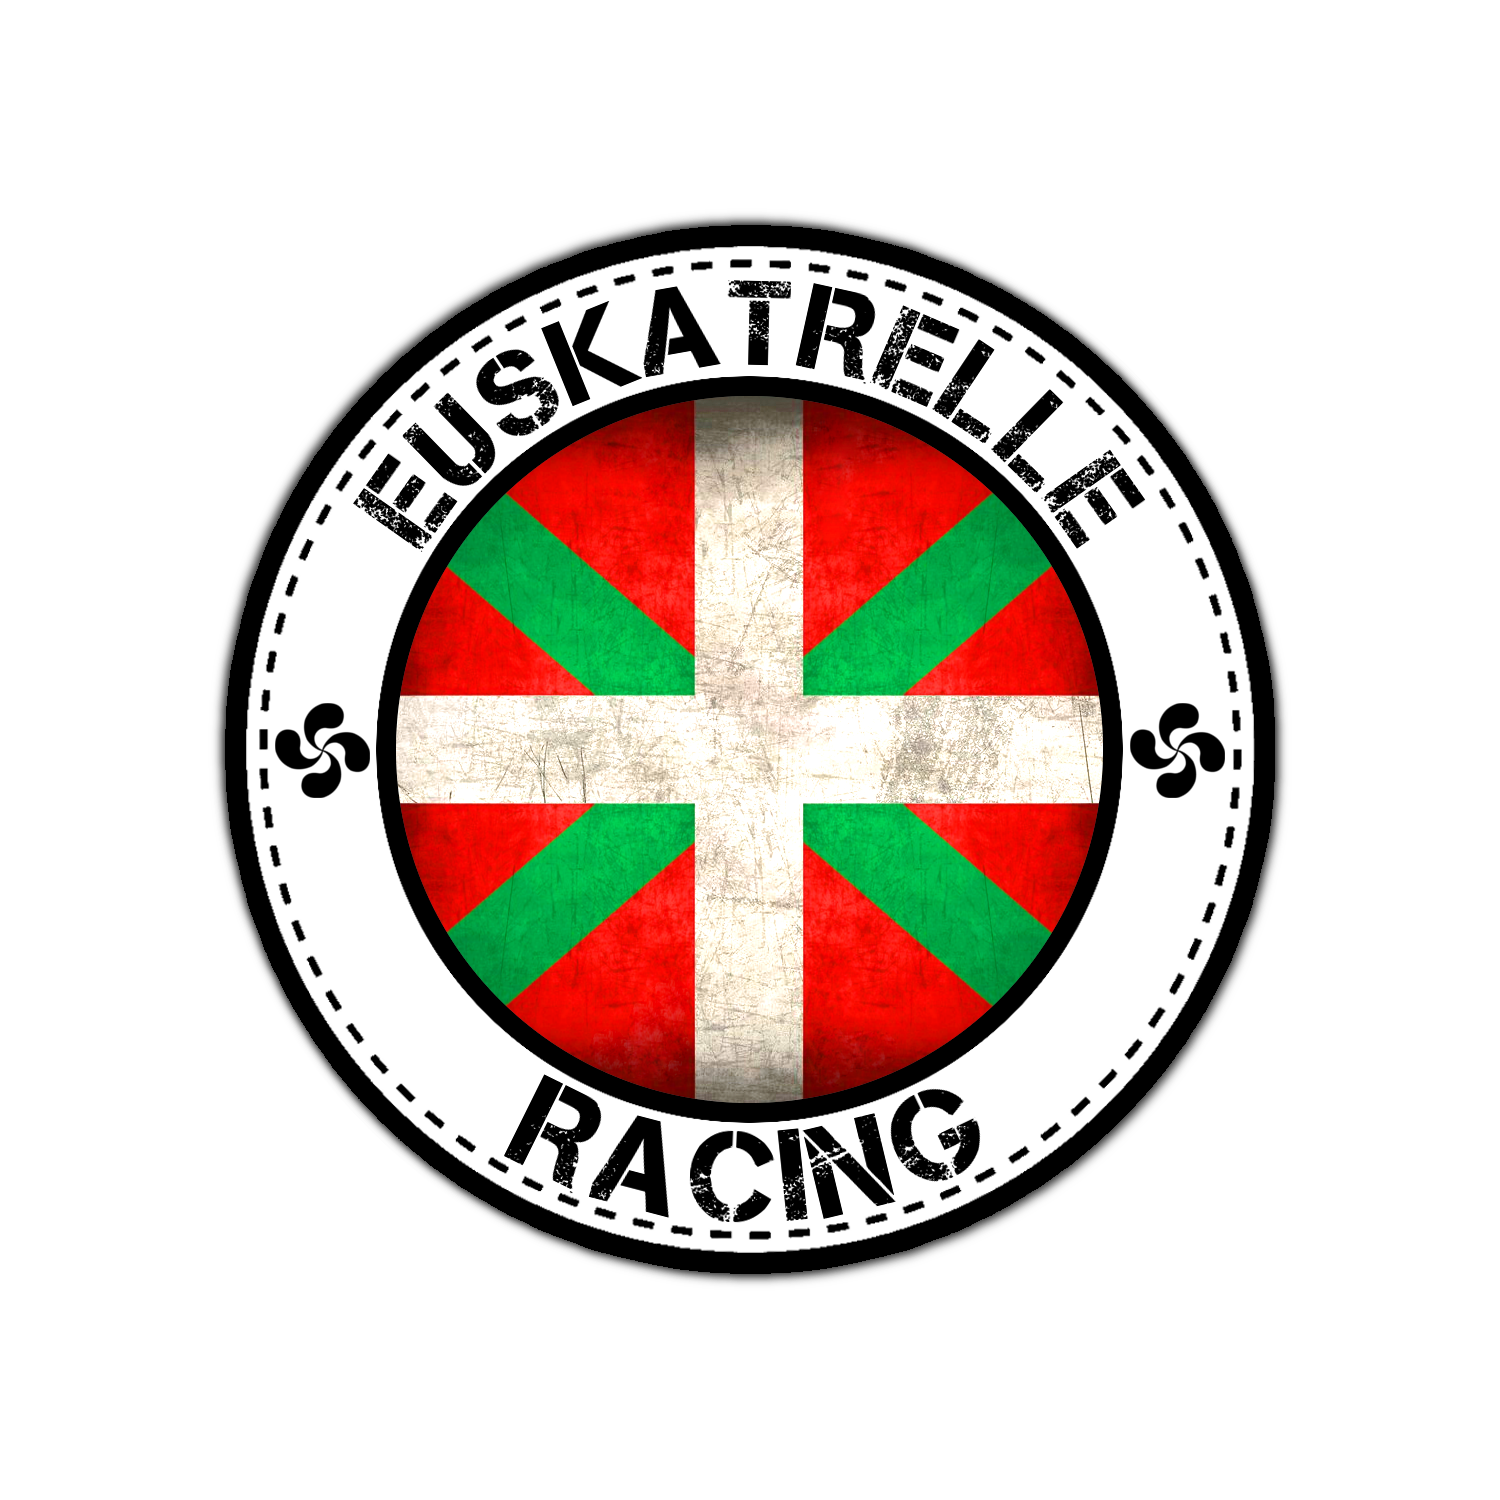 Association - Euskatrelle